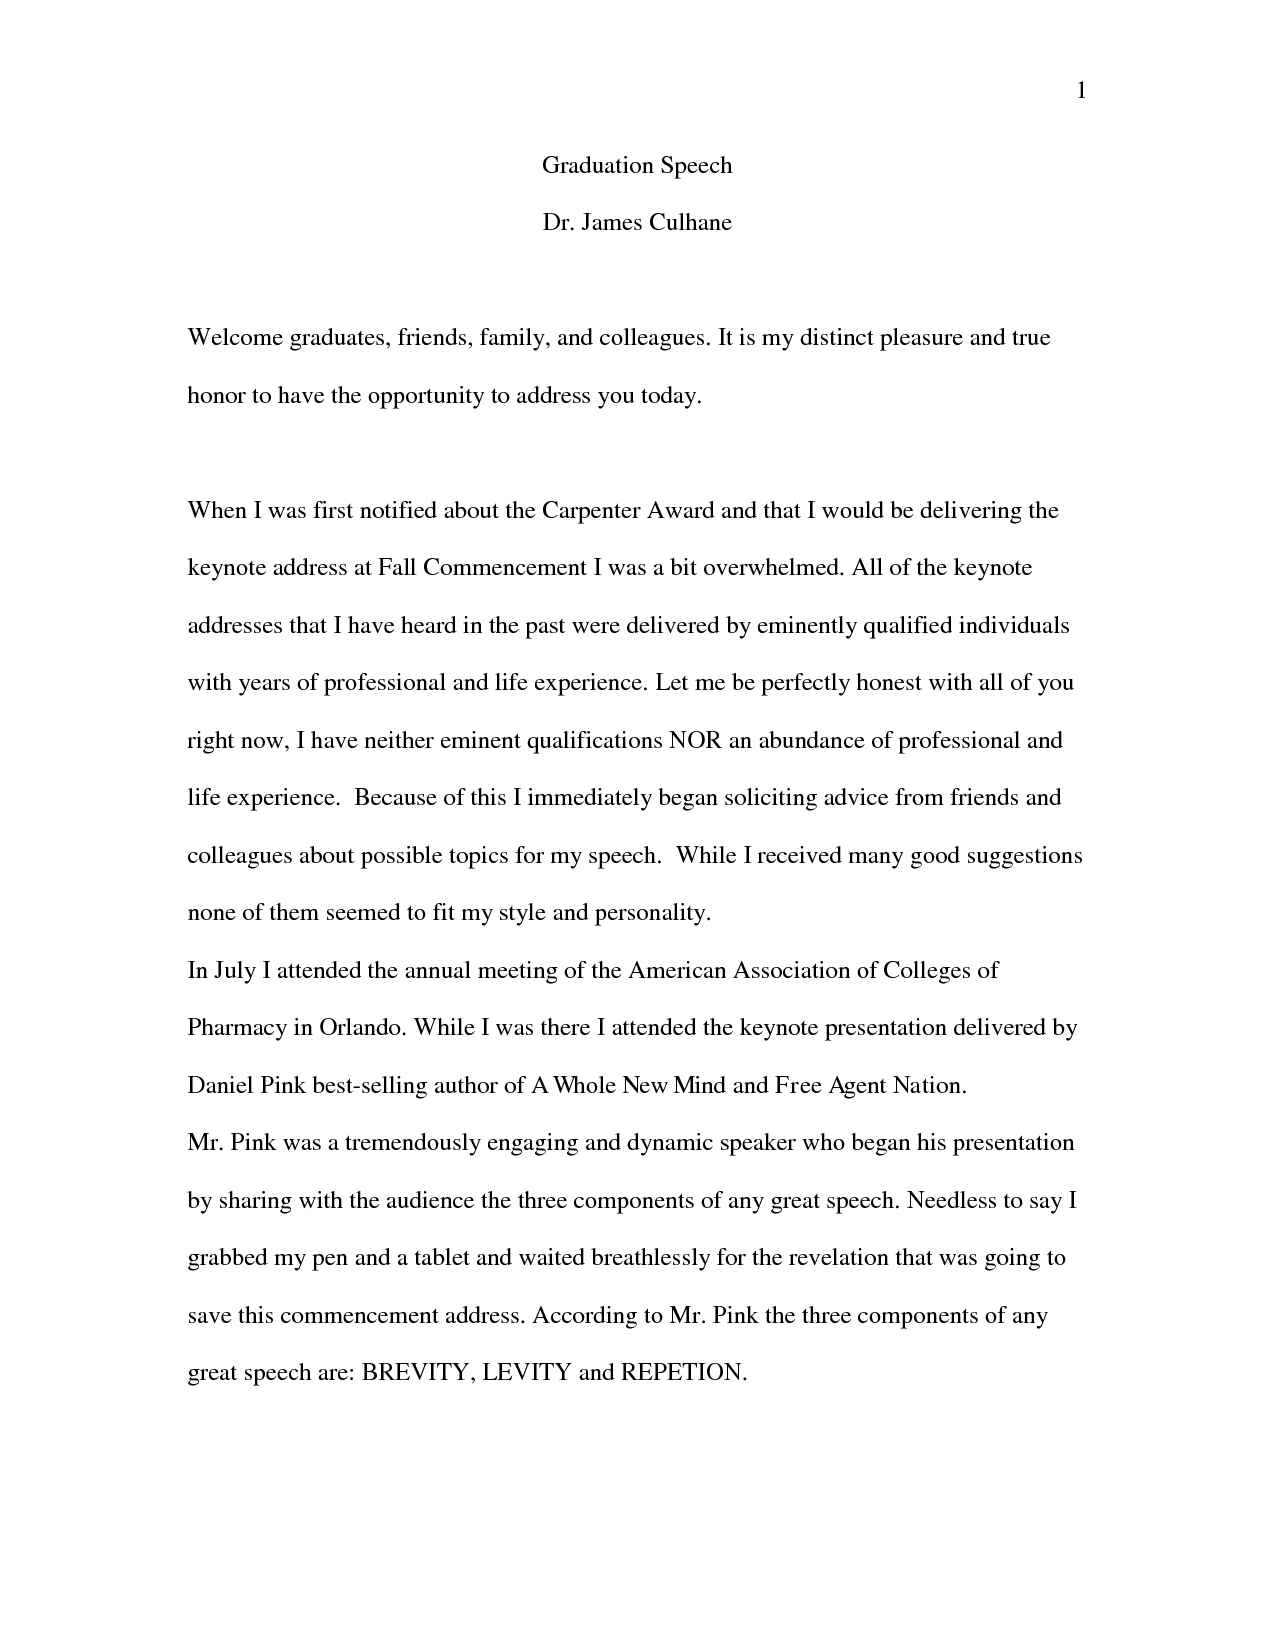 Example Of A Good Thesis Statement For An Essay  Argumentative Essay Topics On Health also Examples Of Thesis Statements For Essays Essay High School Graduation Speech How To Make A Middle  How To Write An Essay Thesis